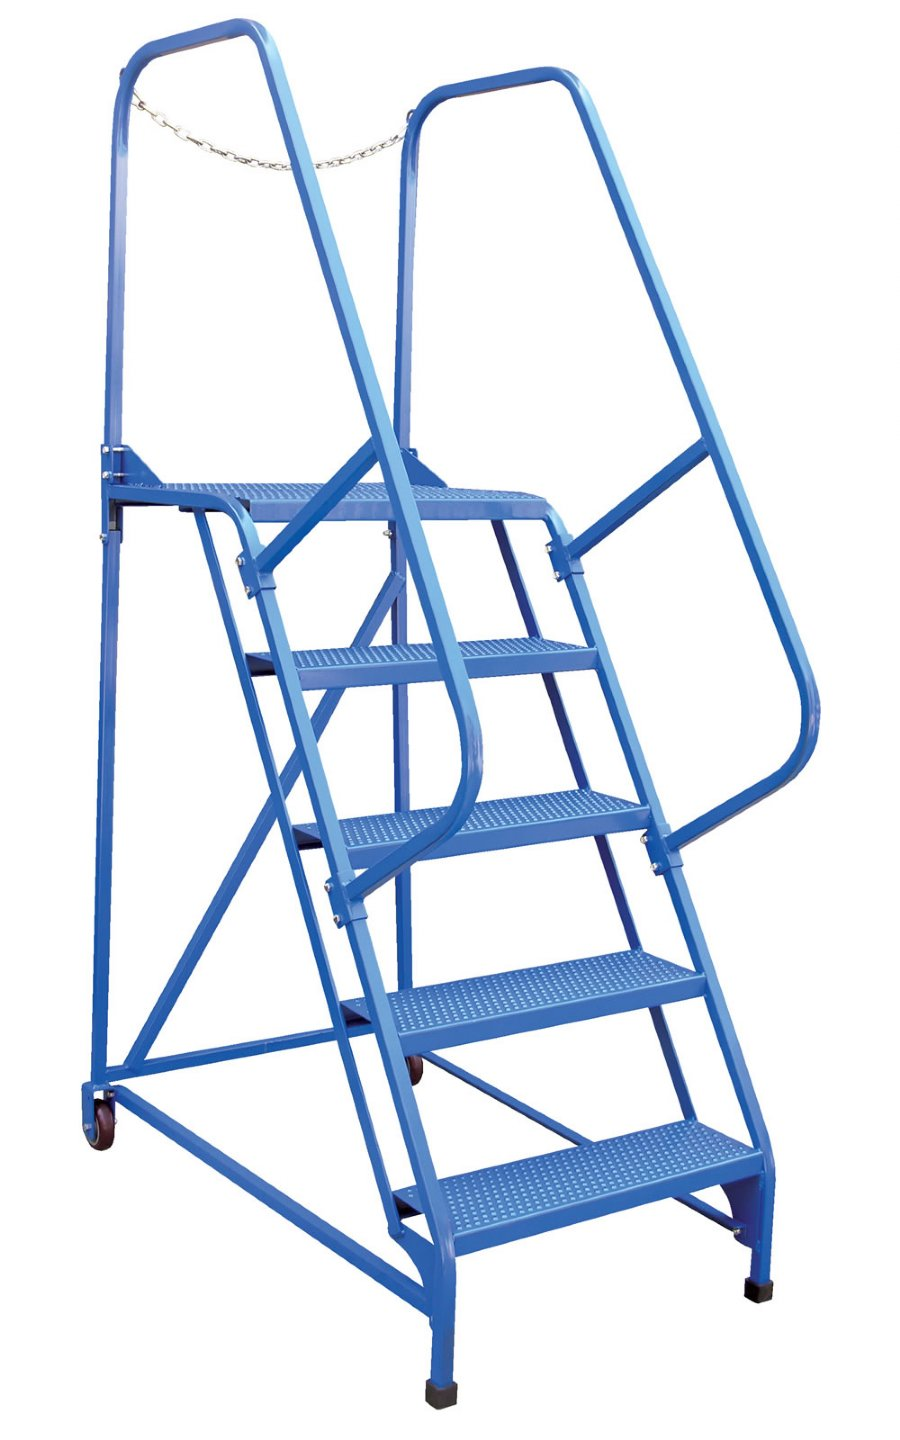 5 Step Portable Maintenance Ladders With Perforated Steps